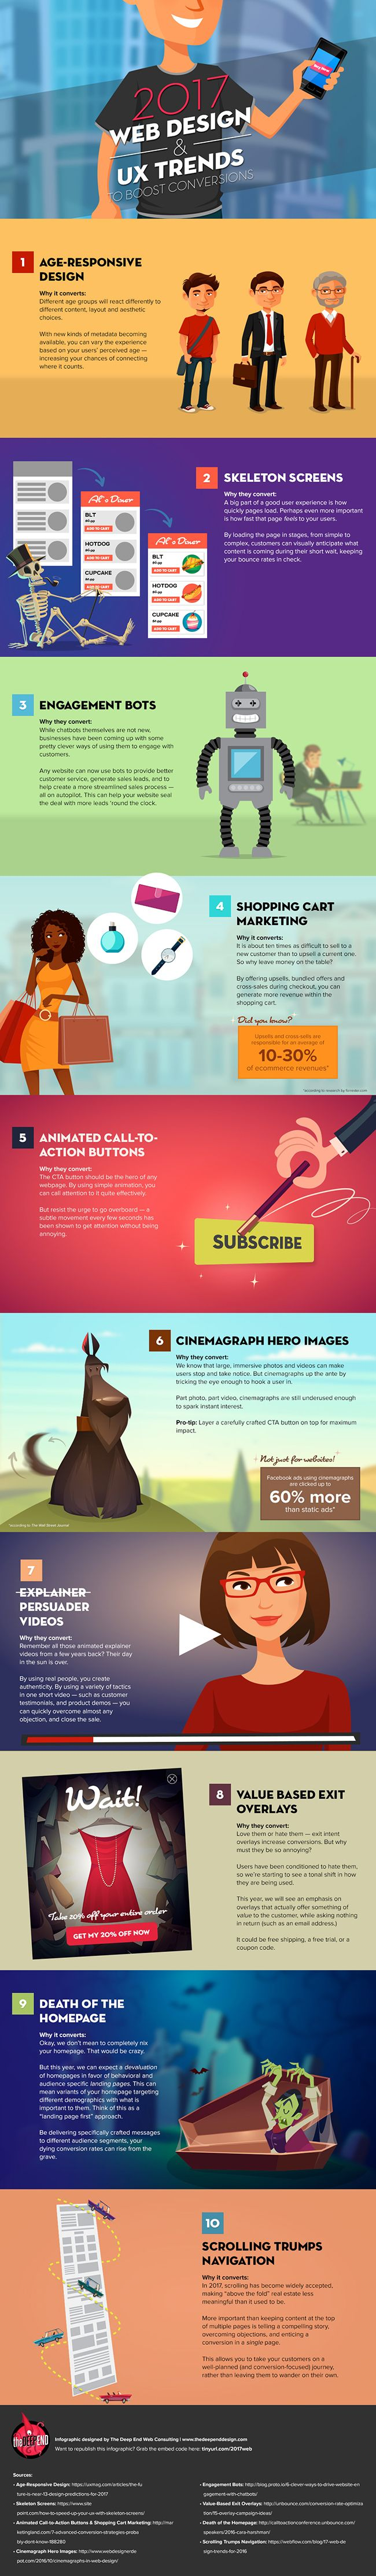 the  best images about all things modern marketing on pinterest - find this pin and more on all things modern marketing